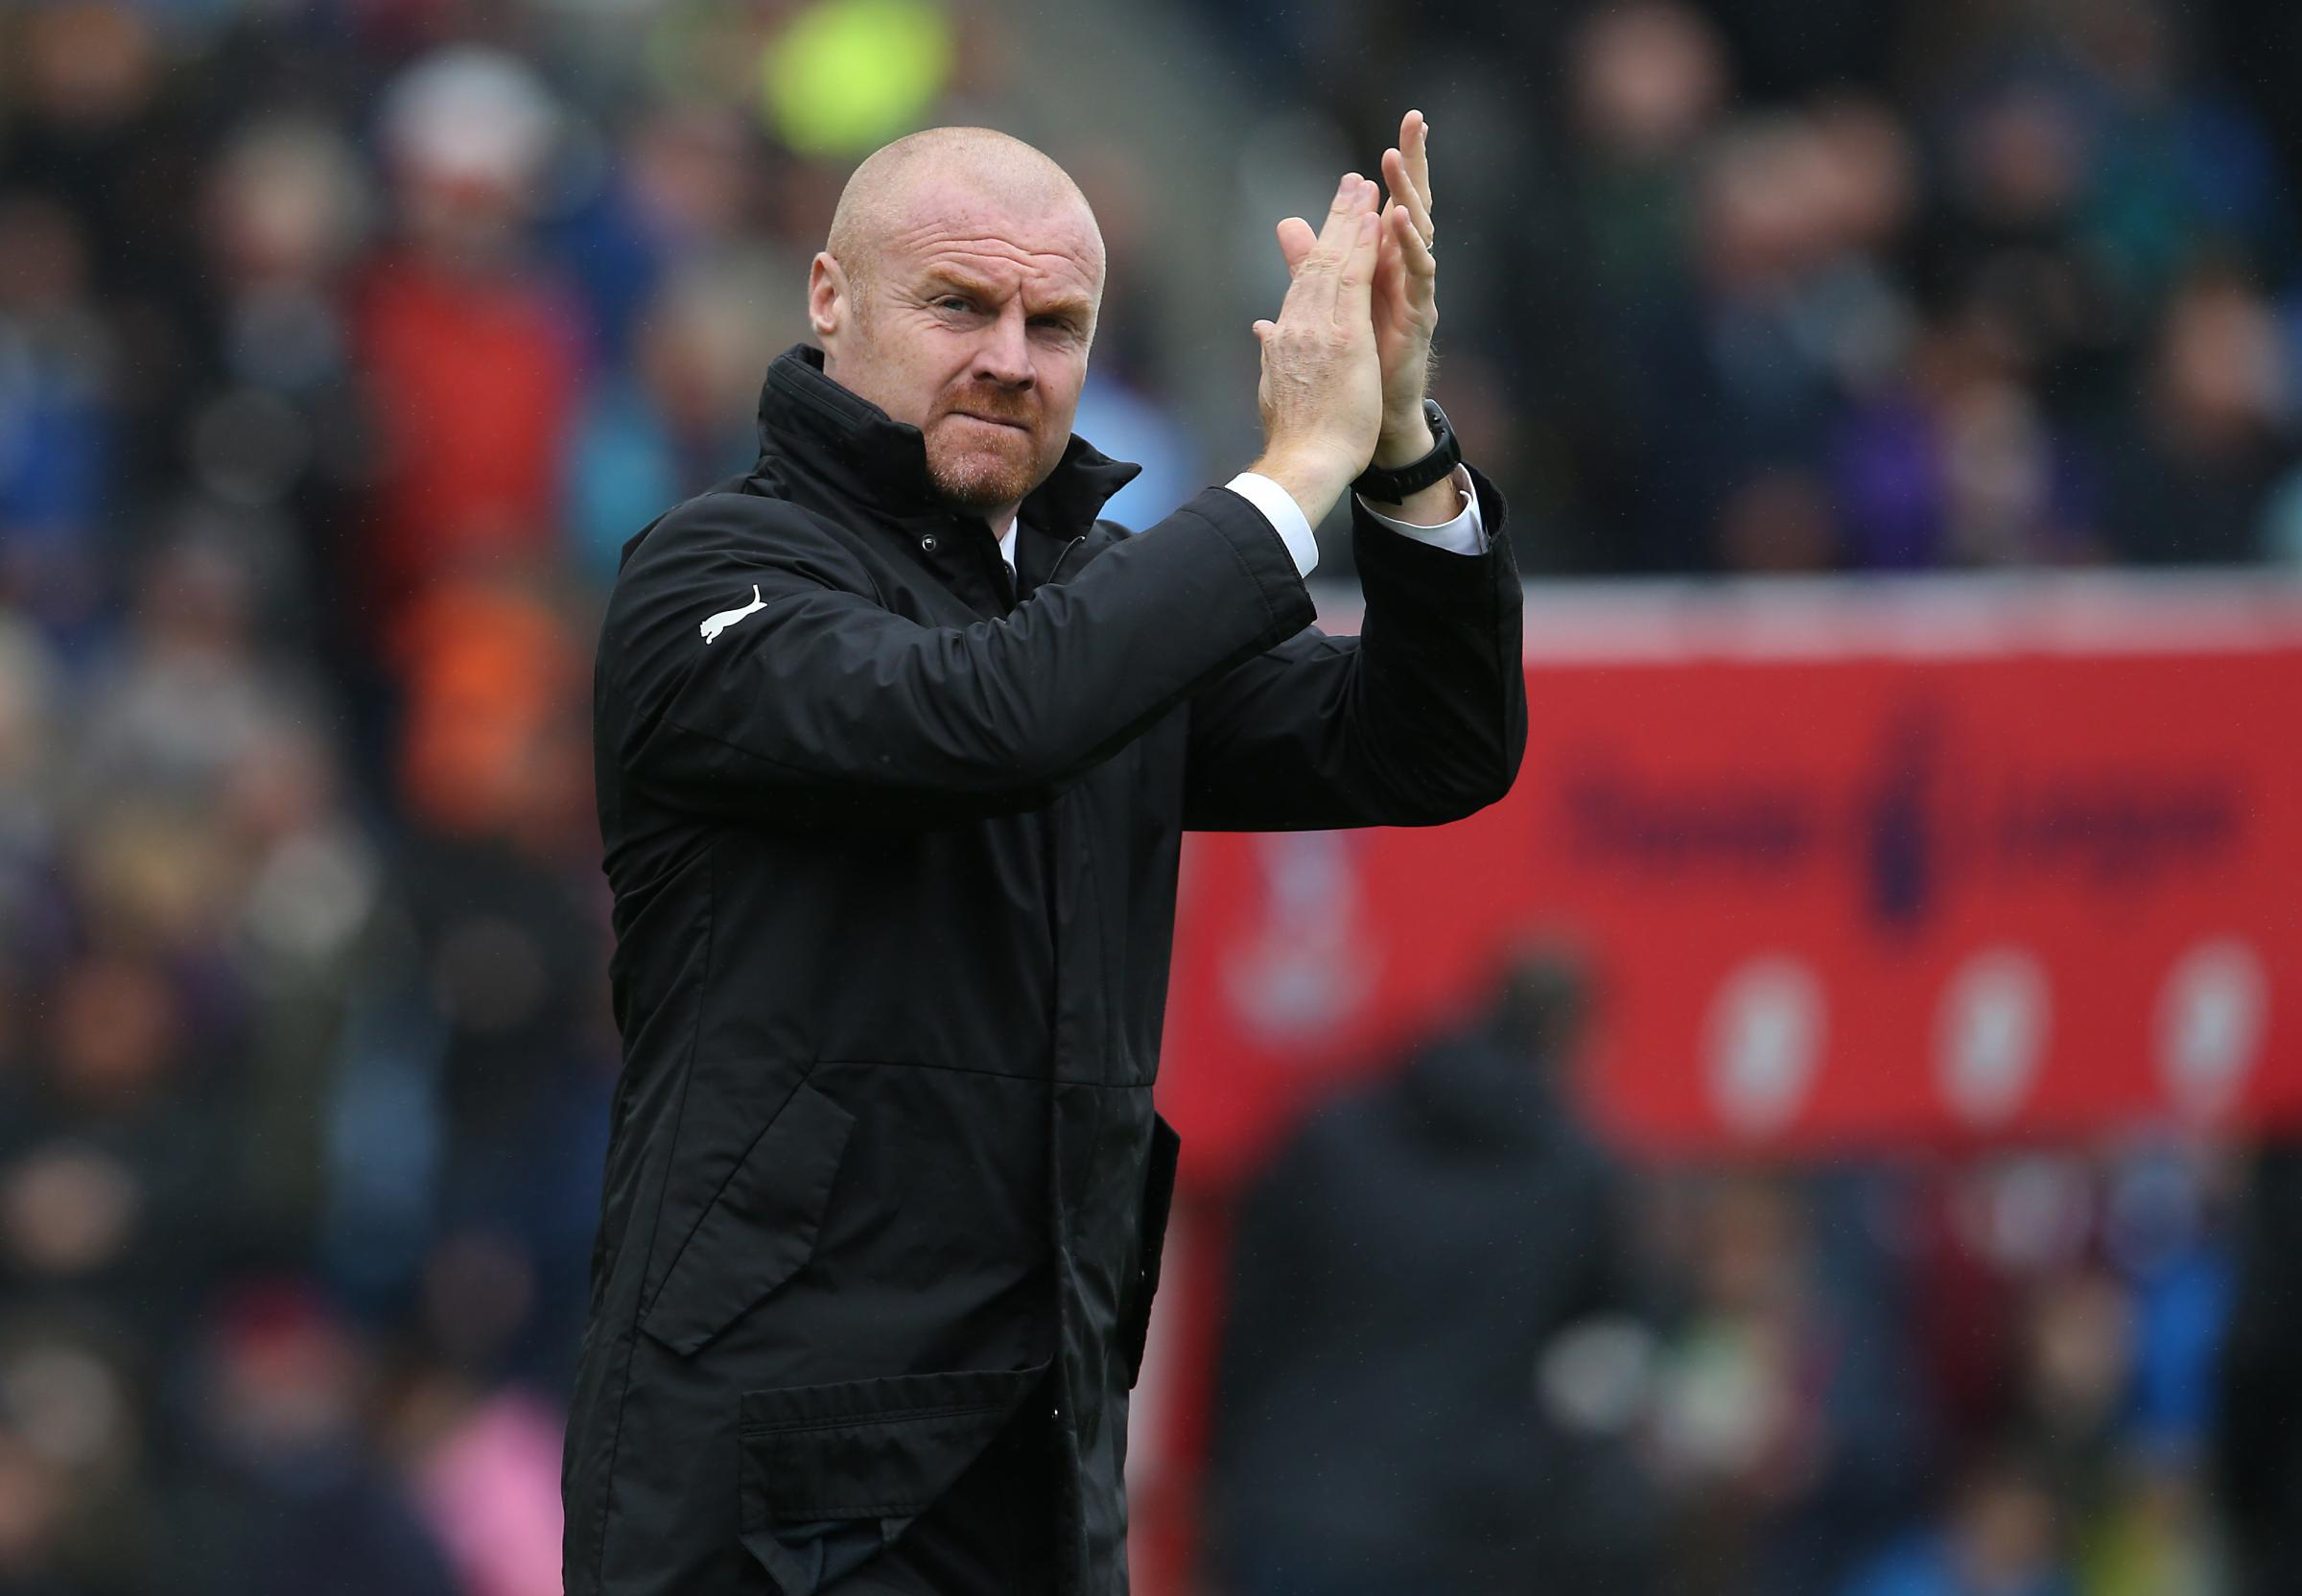 Sean Dyche insists he's isn't concerned about increased expectations at Burnley